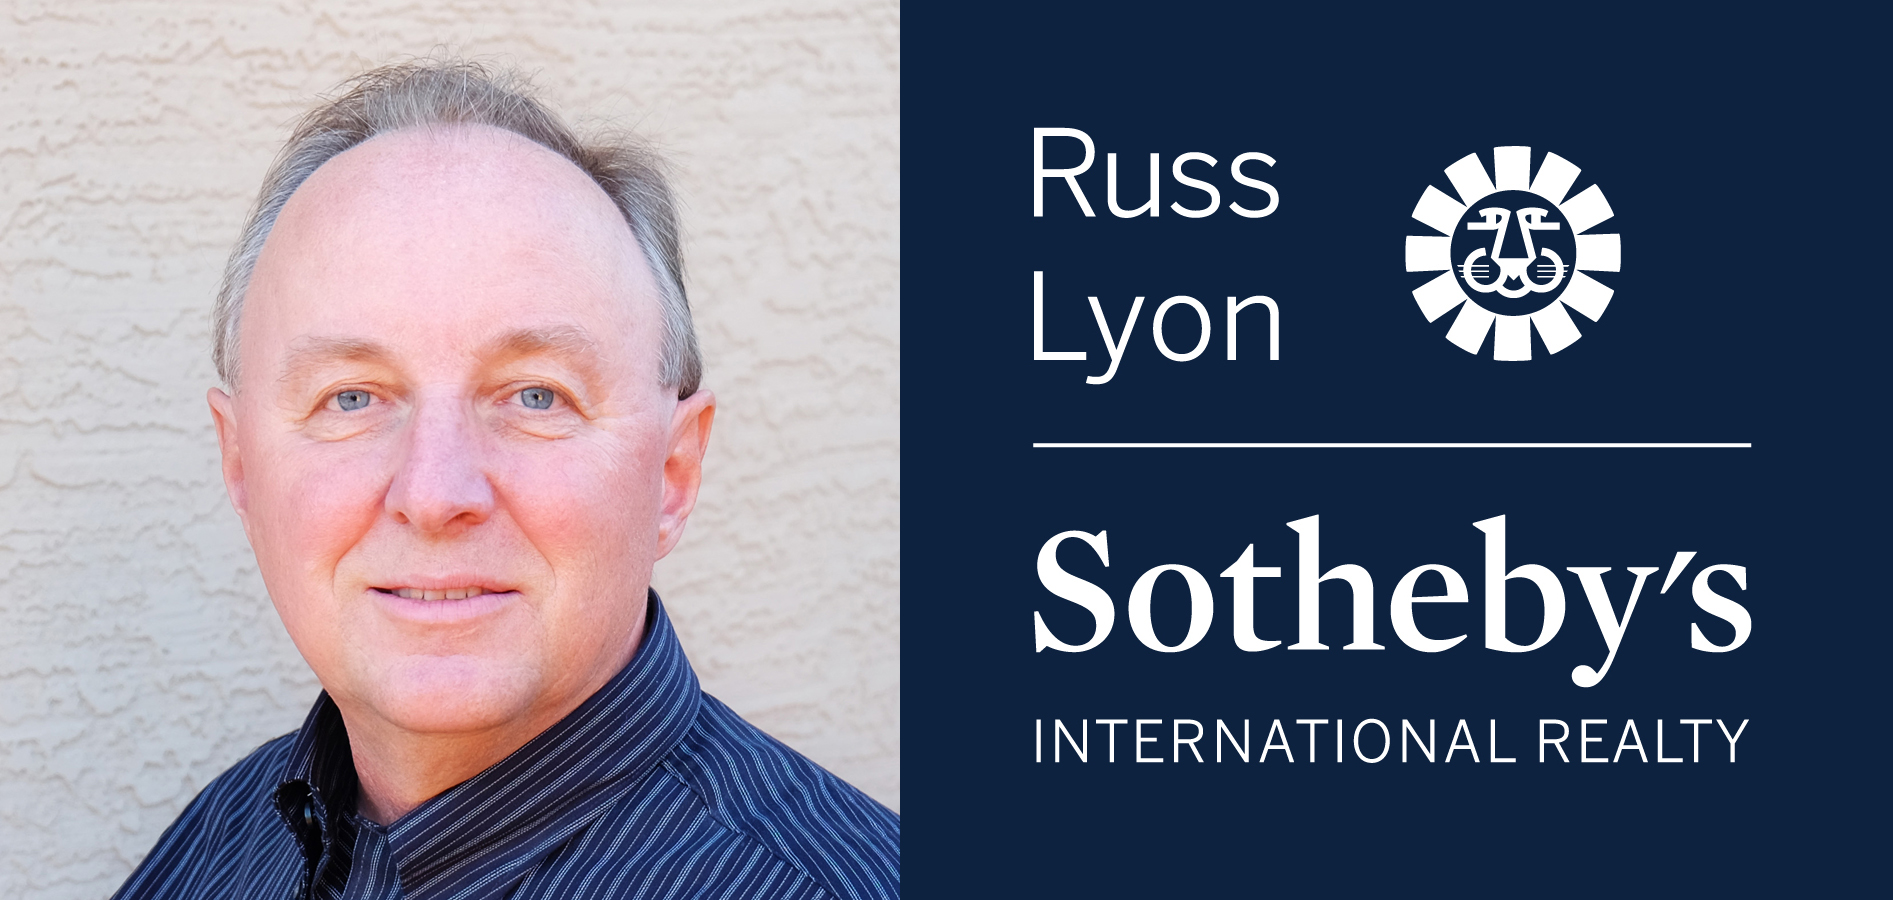 Ron Weiss - (602) 469-3078  CRS and GRI Certifications  Russ Lyon Sotheby's International Realty